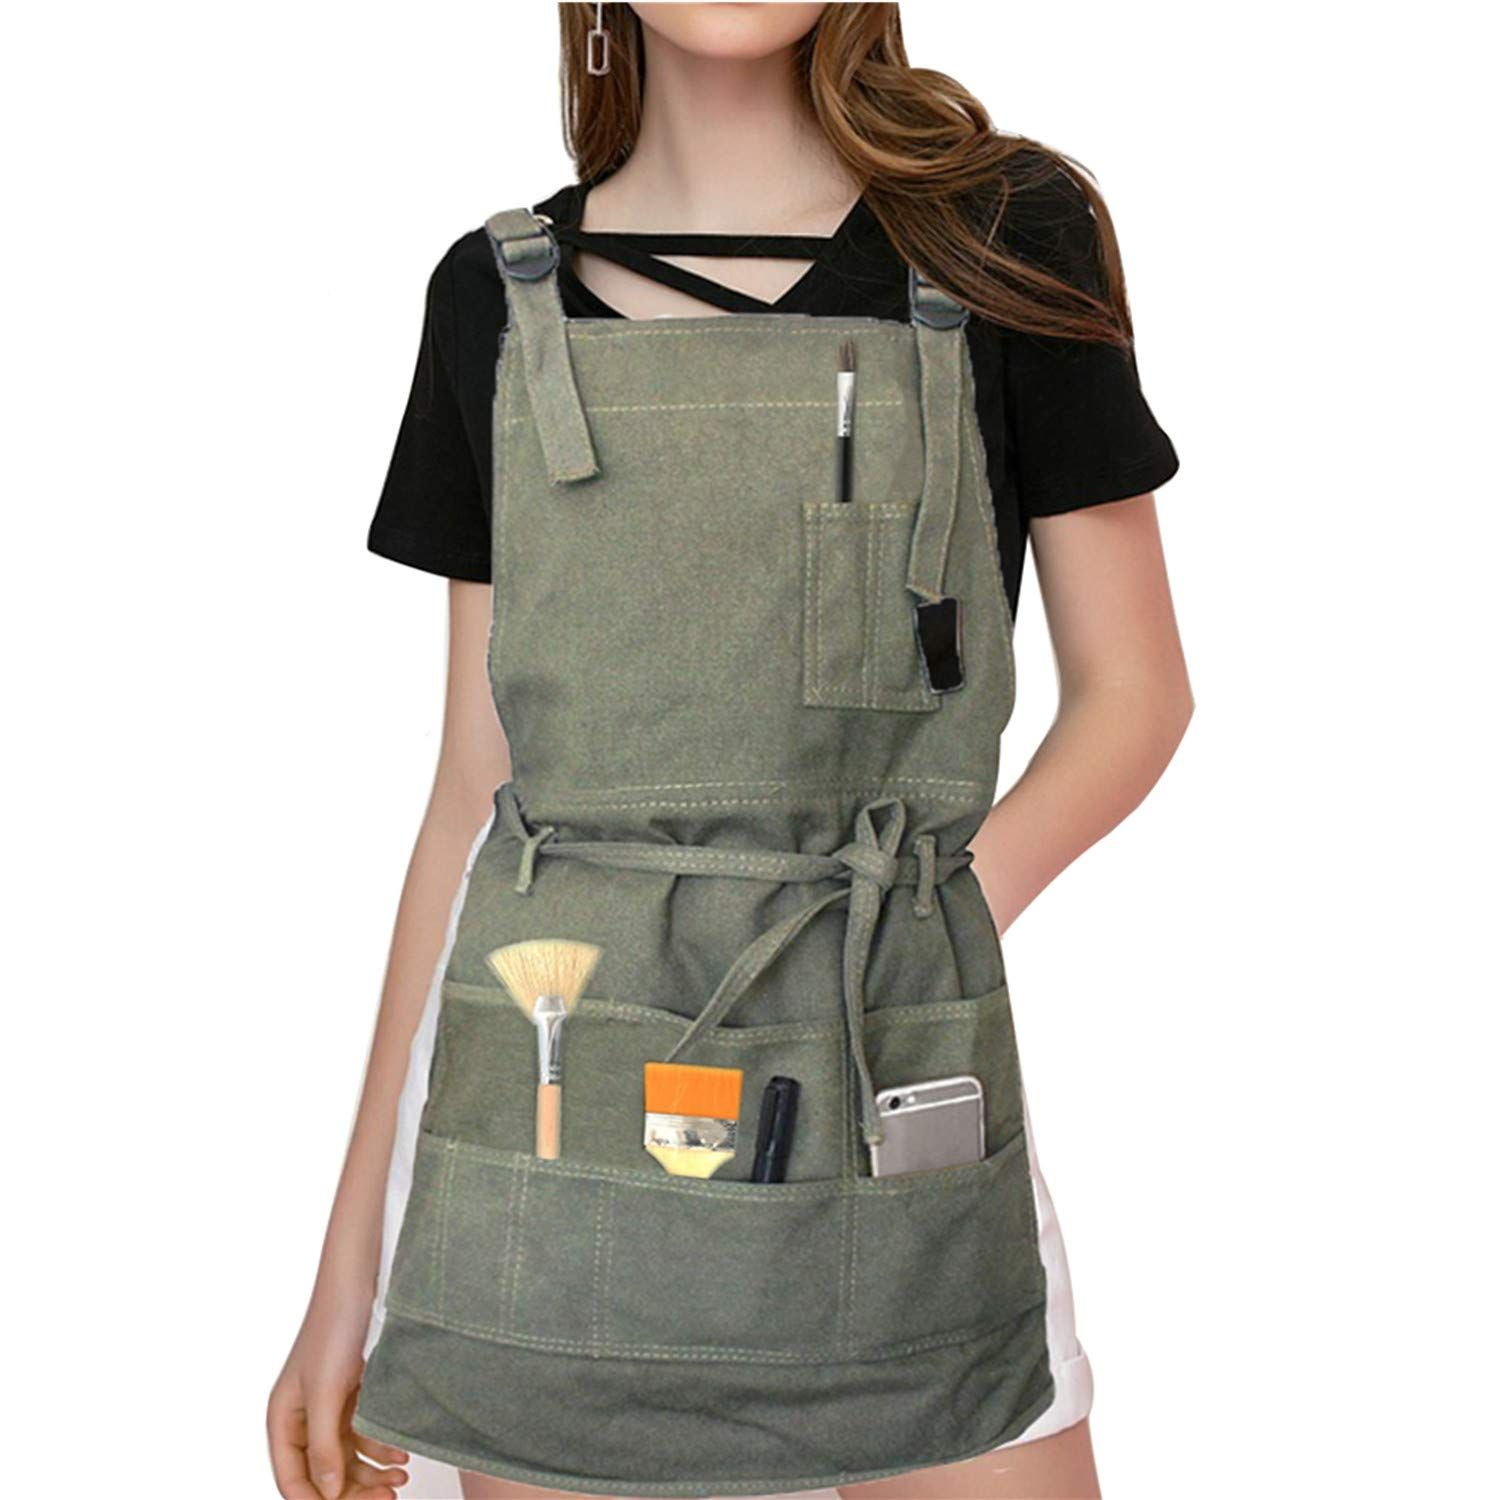 Artist Apron Painting Apron Pockets Painters Canvas Aprons With